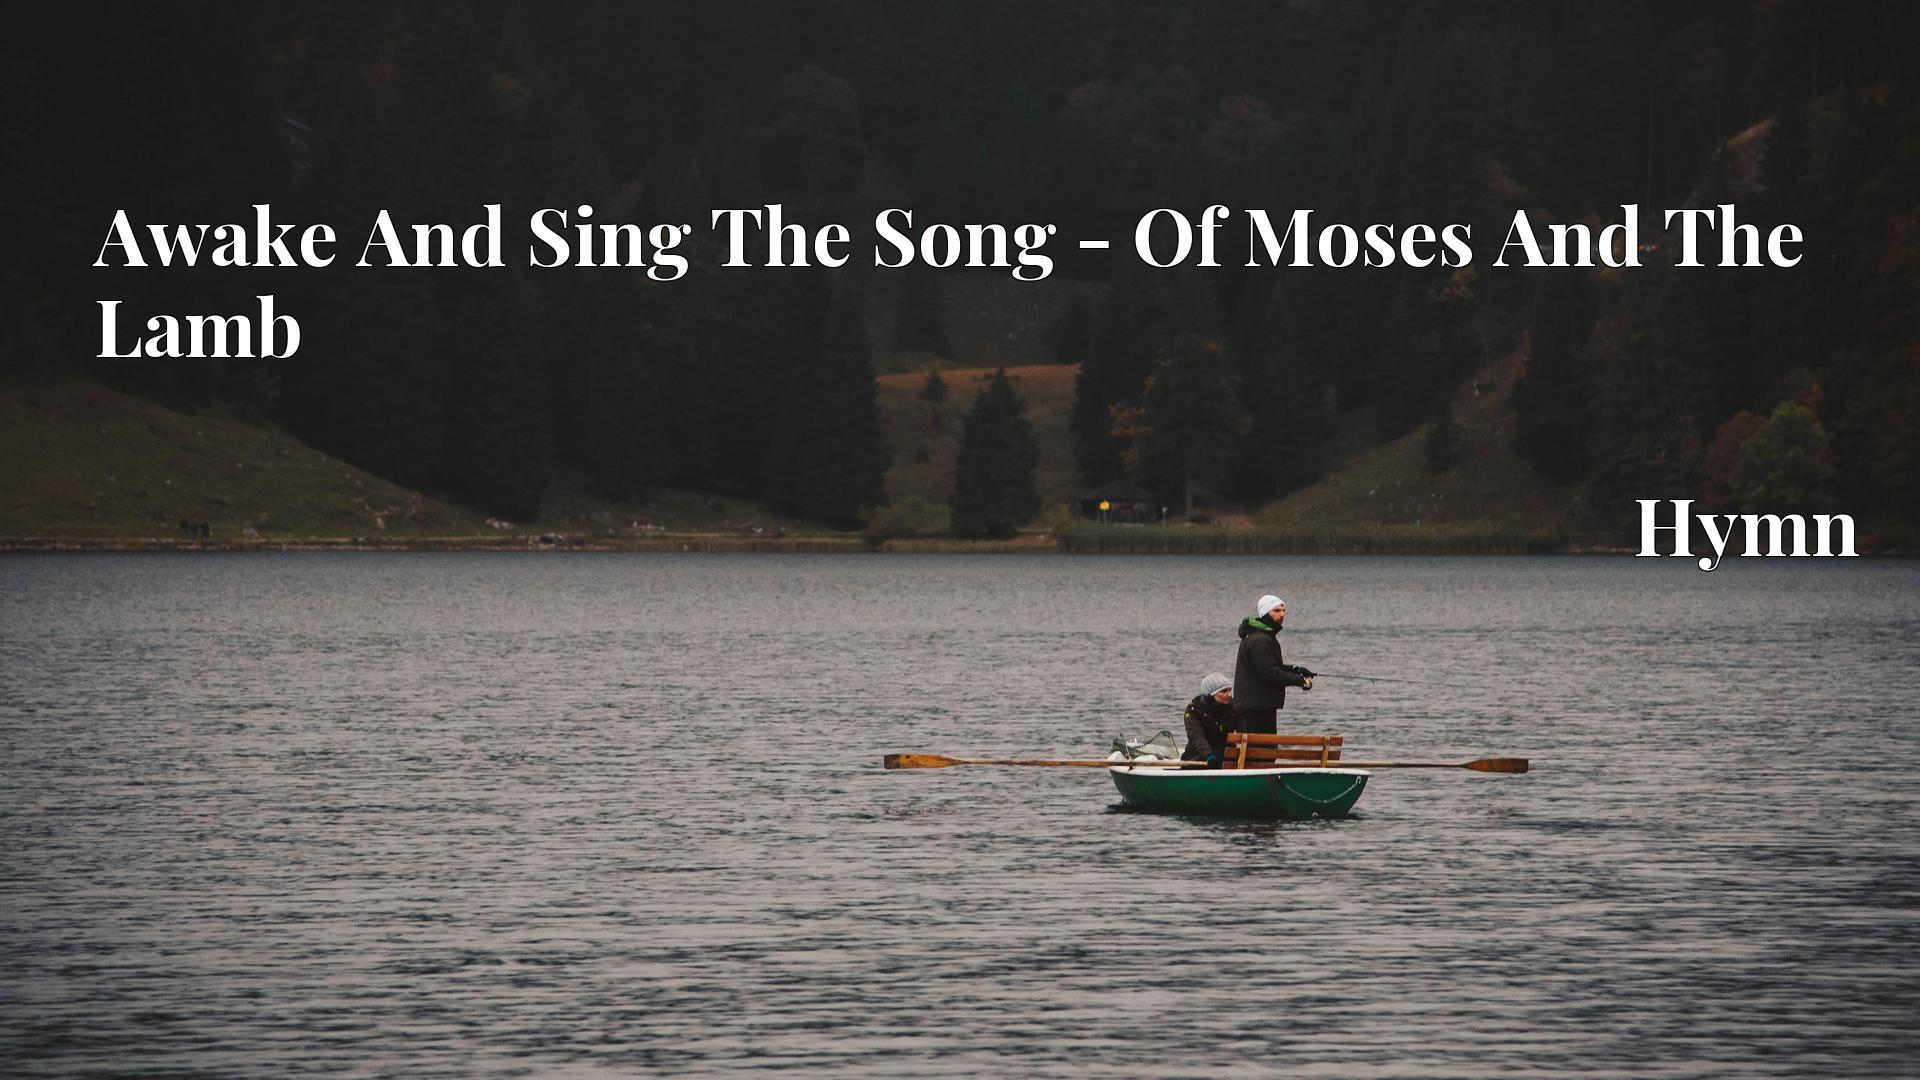 Awake And Sing The Song - Of Moses And The Lamb - Hymn